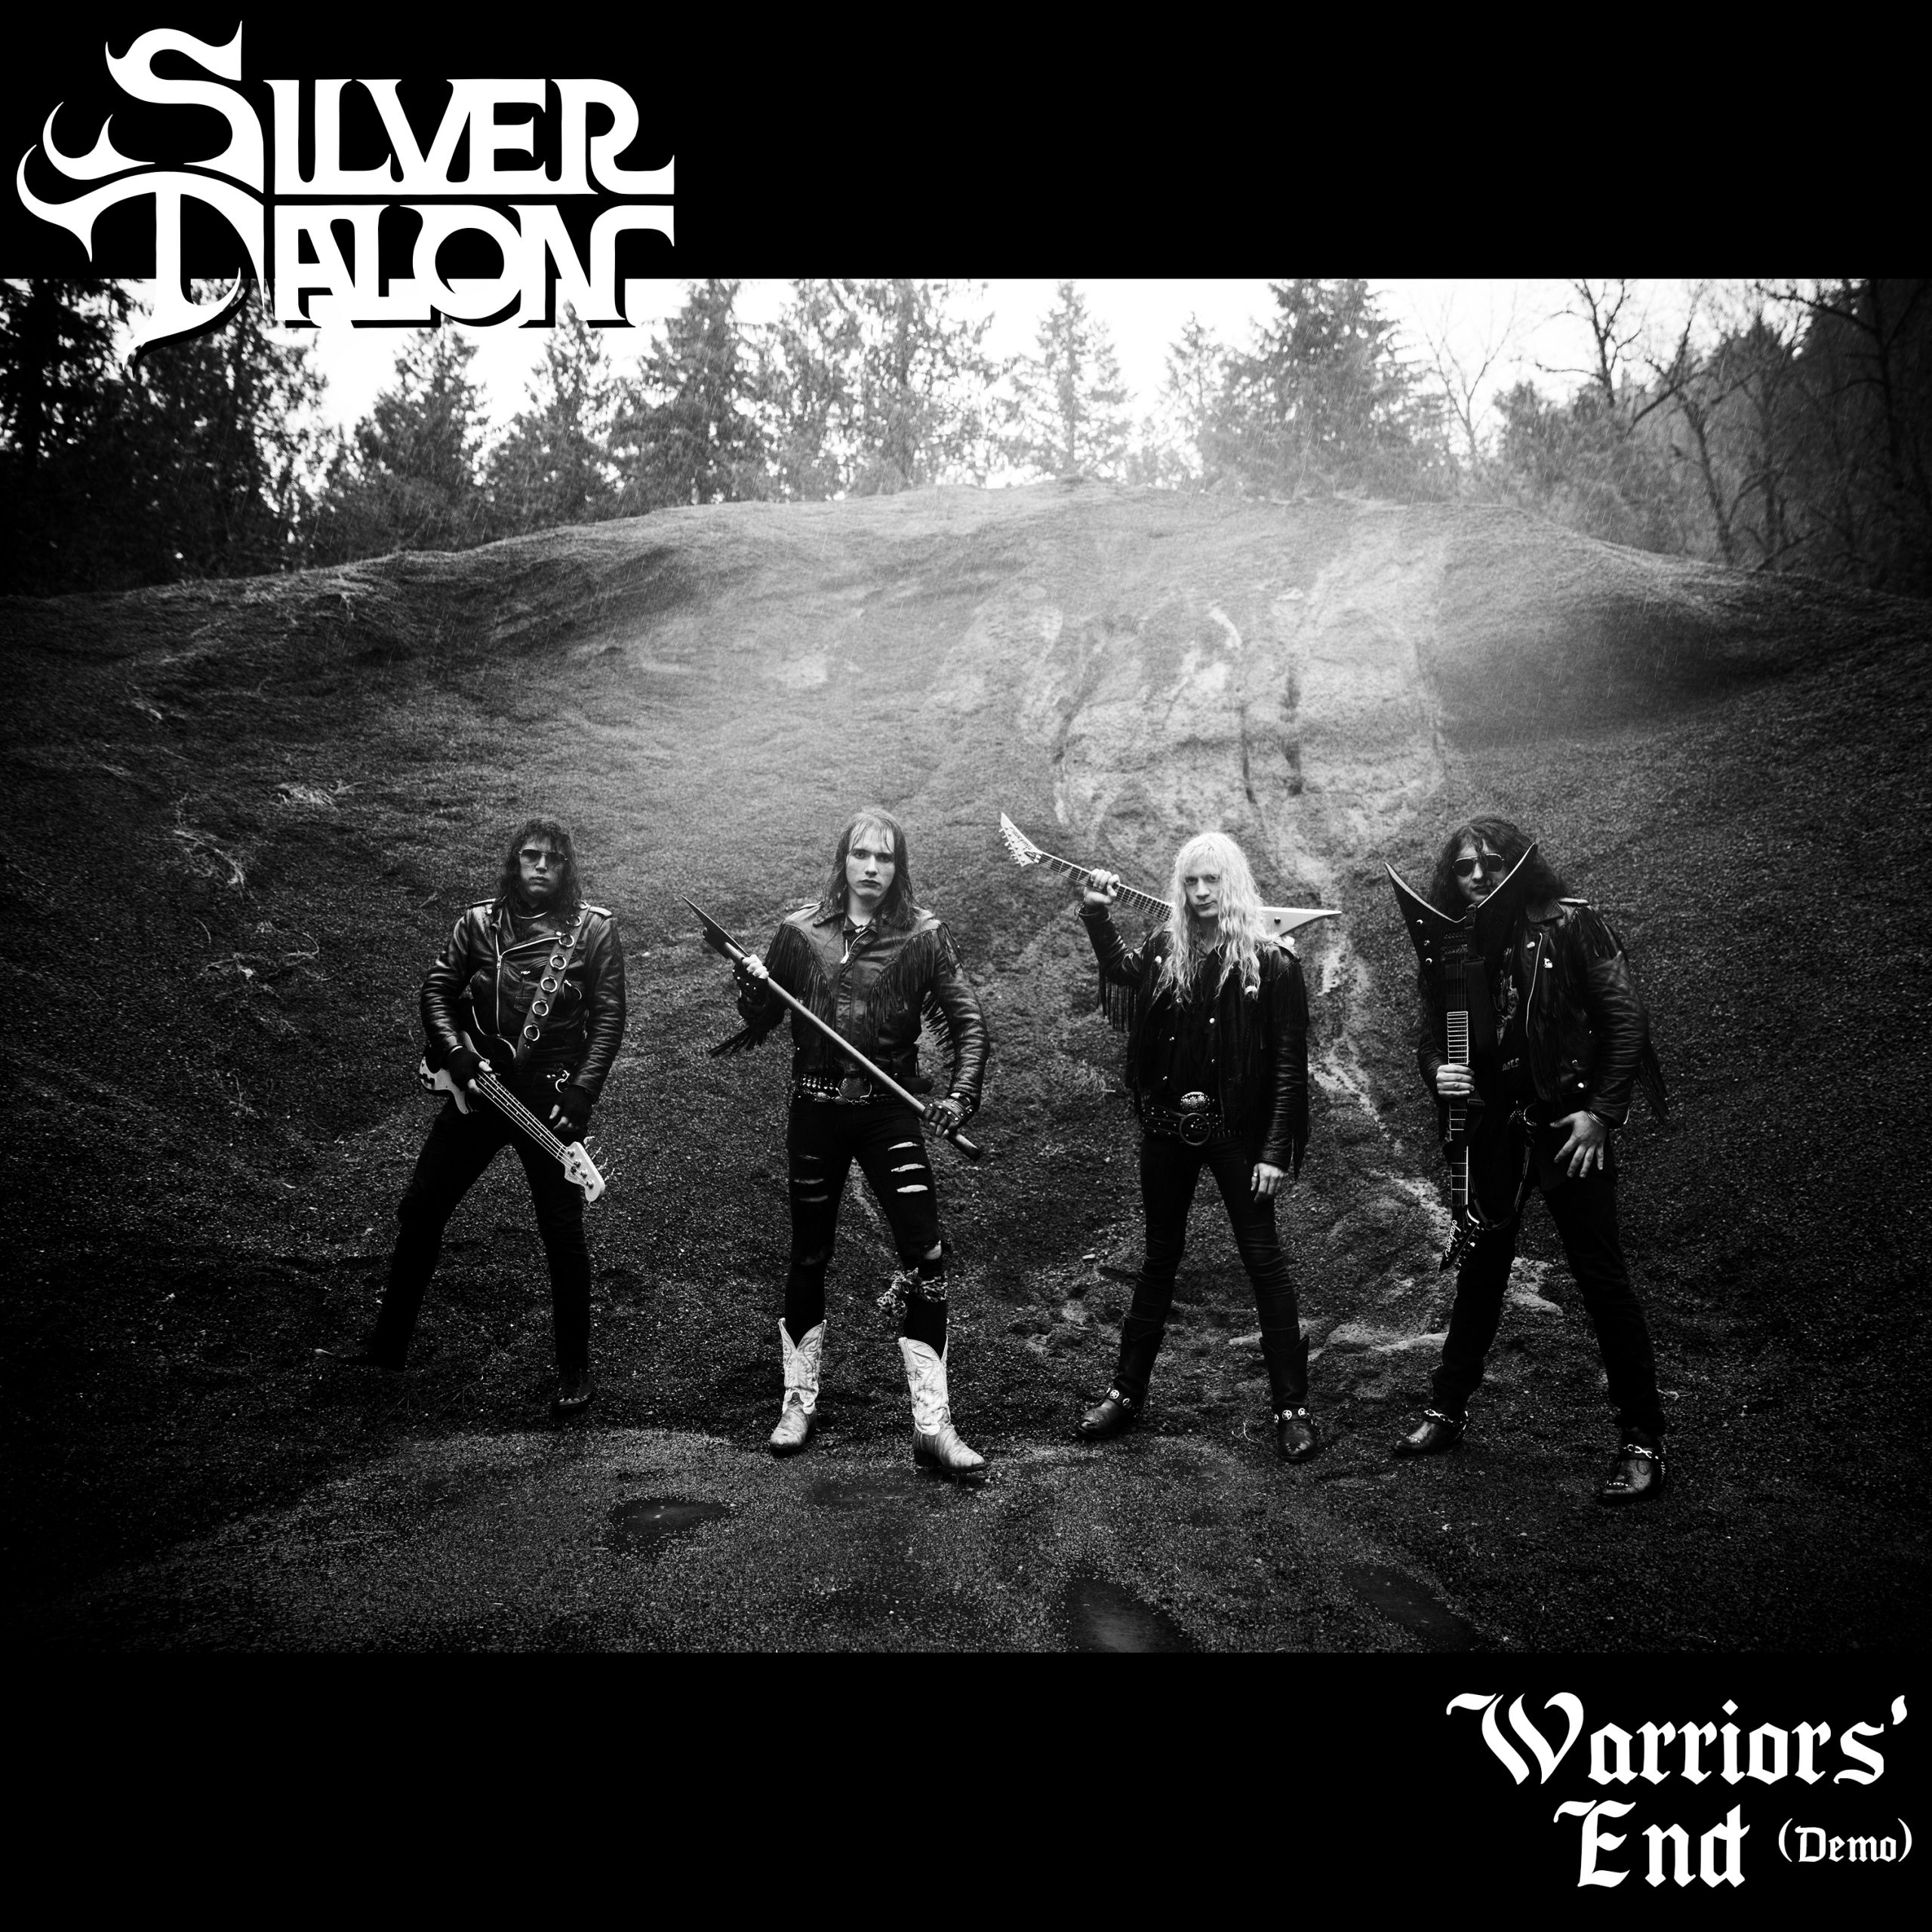 Silver Talon Warriors' End Single